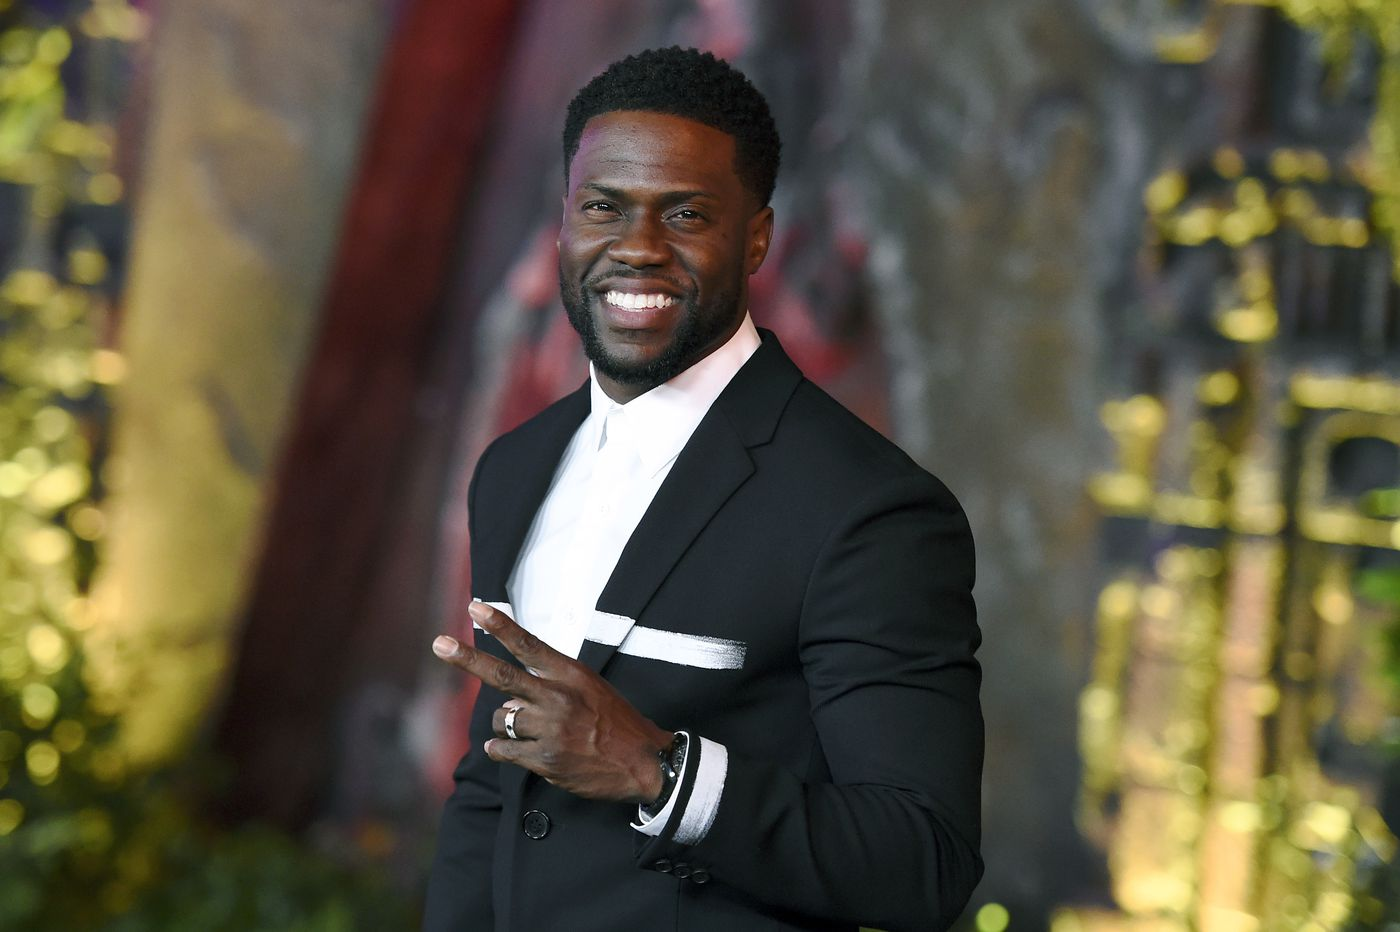 Kevin Hart says he will rethink hosting the Oscars after Ellen DeGeneres' encouragement